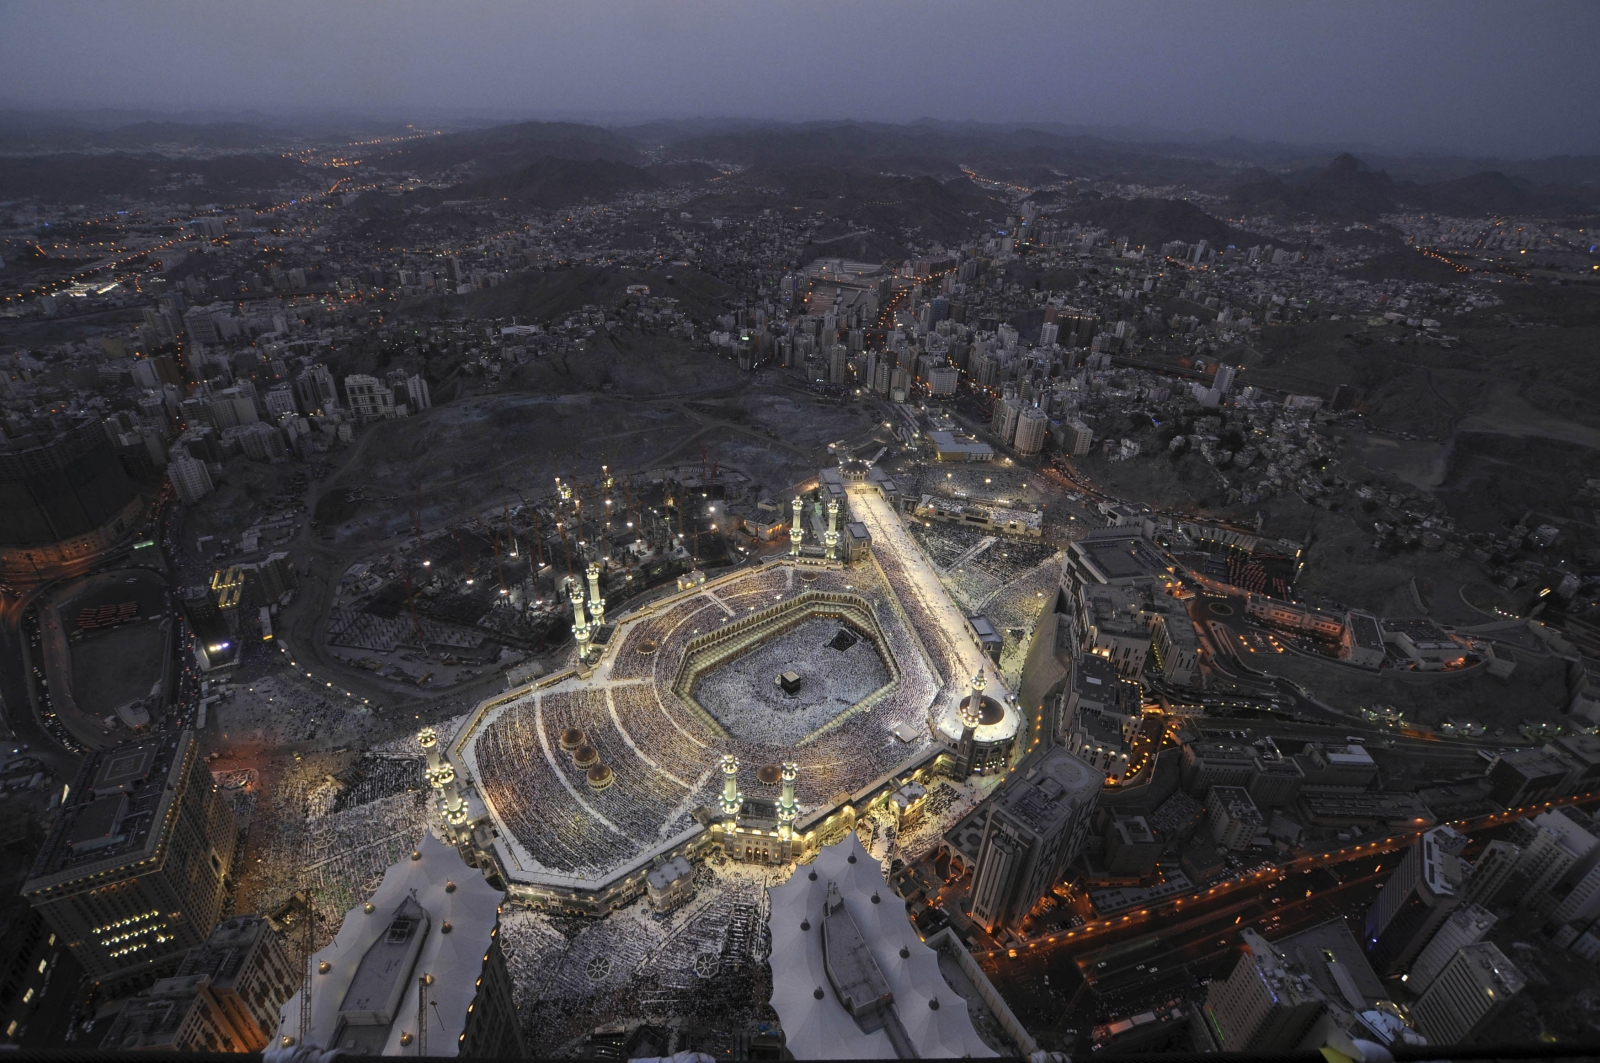 saudi arabia: world's largest hotel being built in holy city of